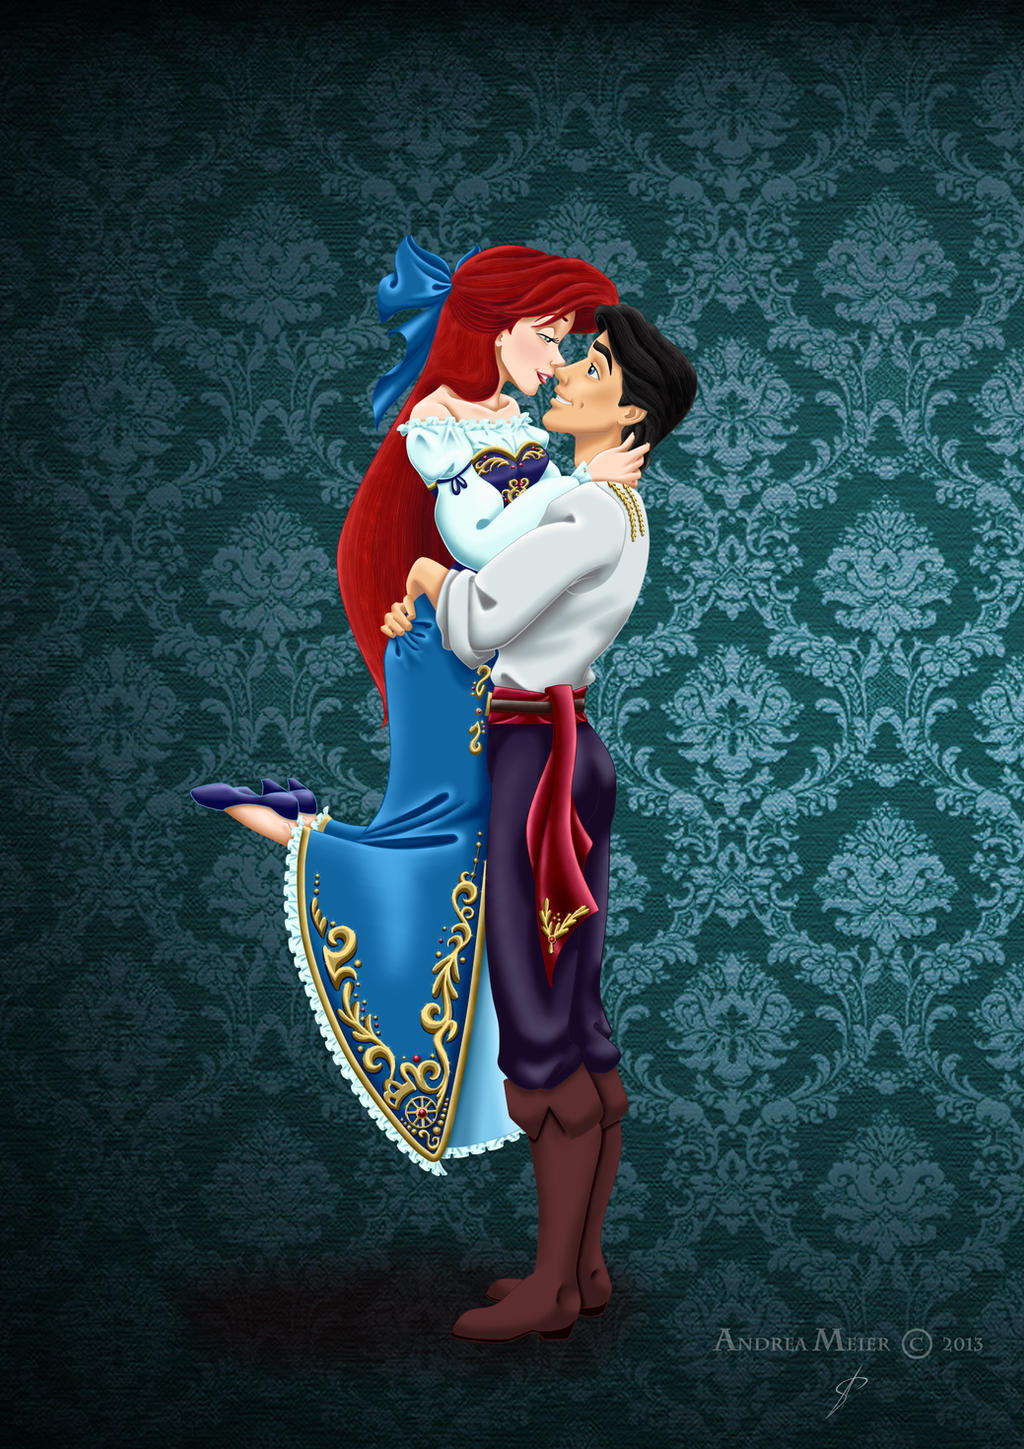 Princess Ariel And Prince Eric In Love | www.imgkid.com ...